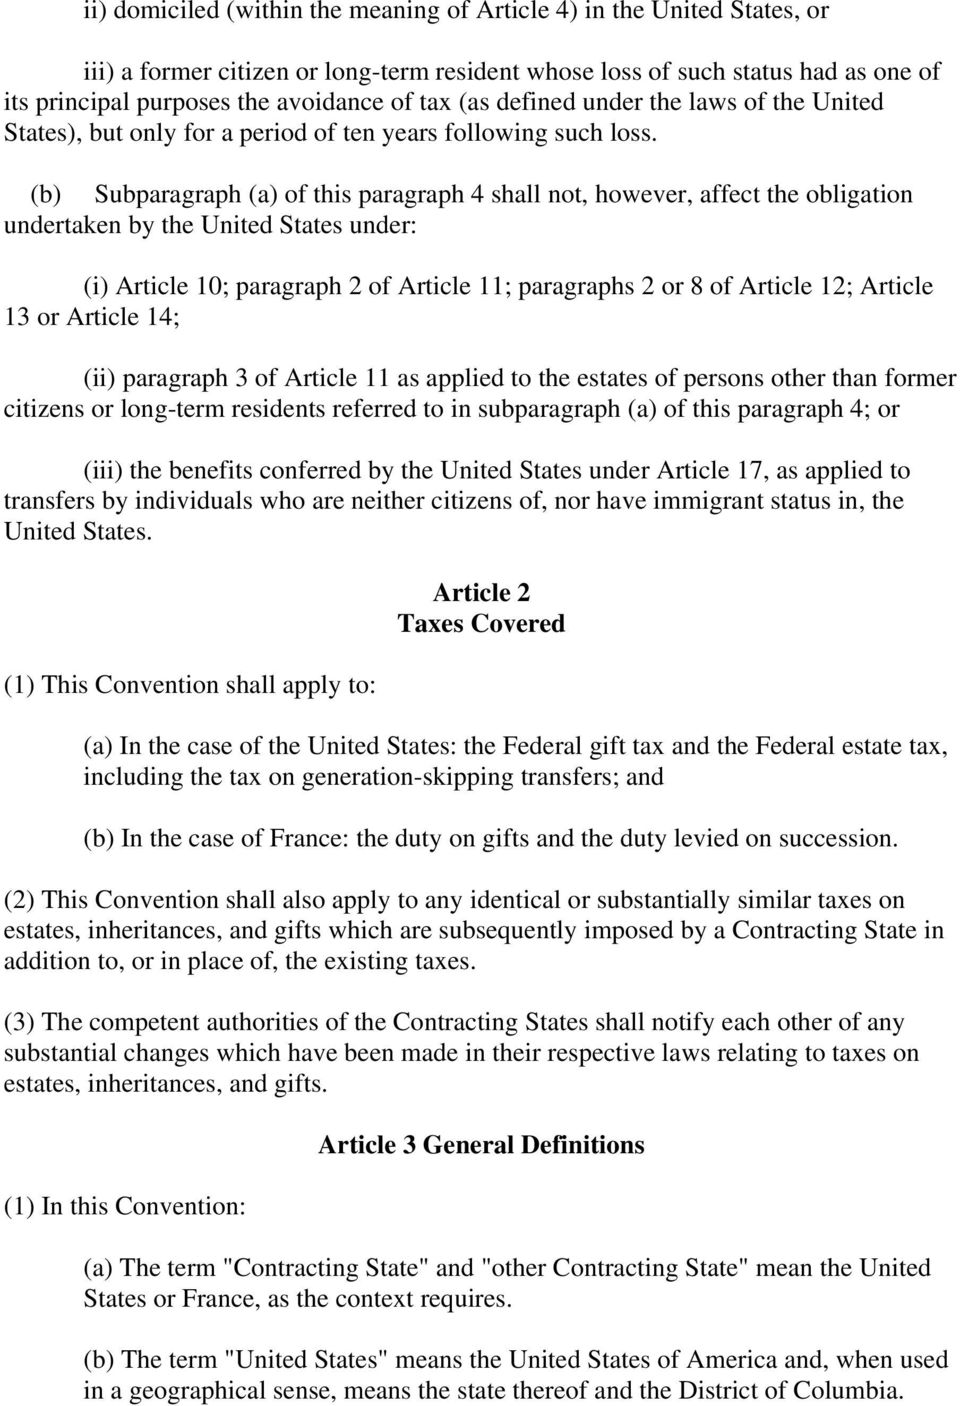 (b) Subparagraph (a) of this paragraph 4 shall not, however, affect the obligation undertaken by the United States under: (i) Article 10; paragraph 2 of Article 11; paragraphs 2 or 8 of Article 12;